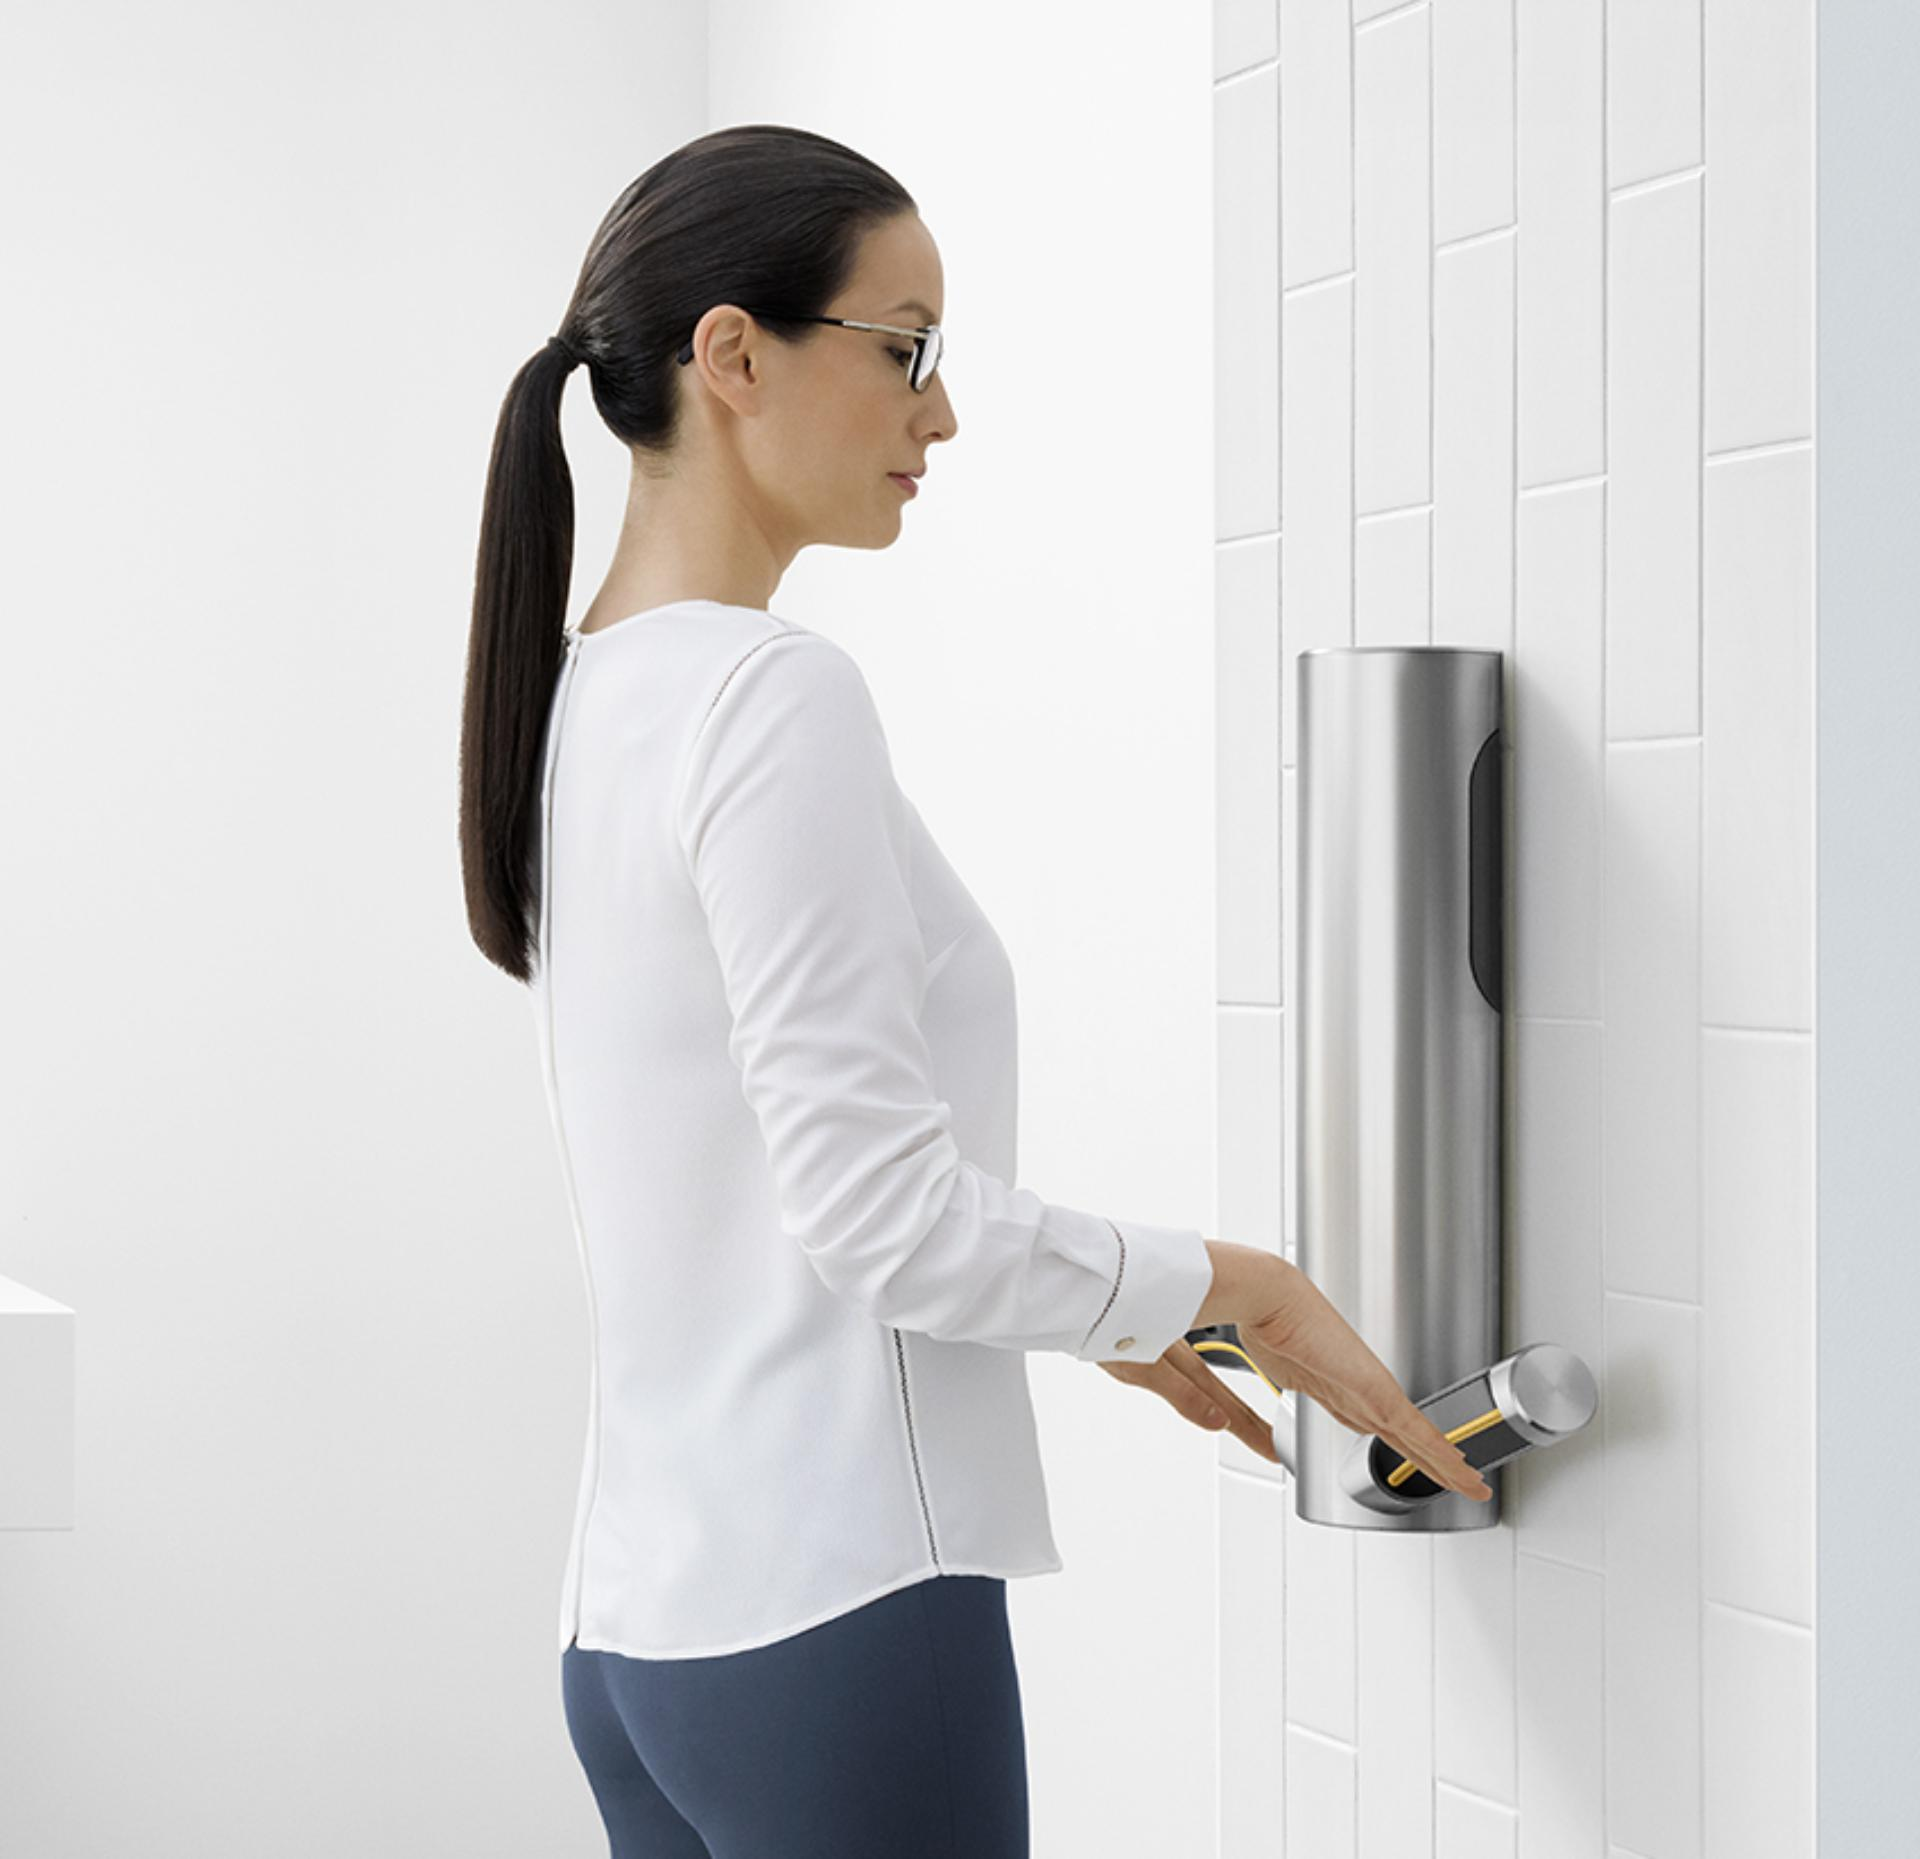 Woman drying hands